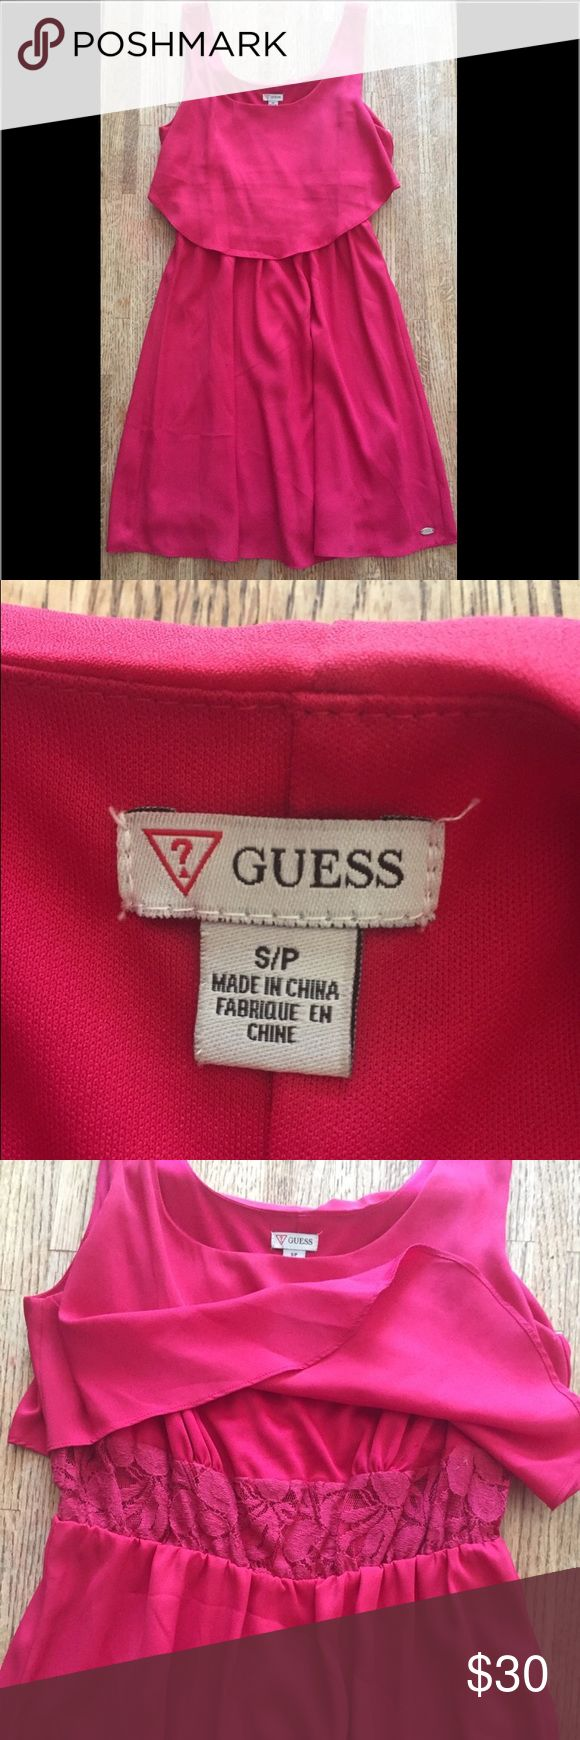 GUESS DRESS SIZE SMALL Very cute pink guess dress size small never worn in excellent shape! Guess Dresses